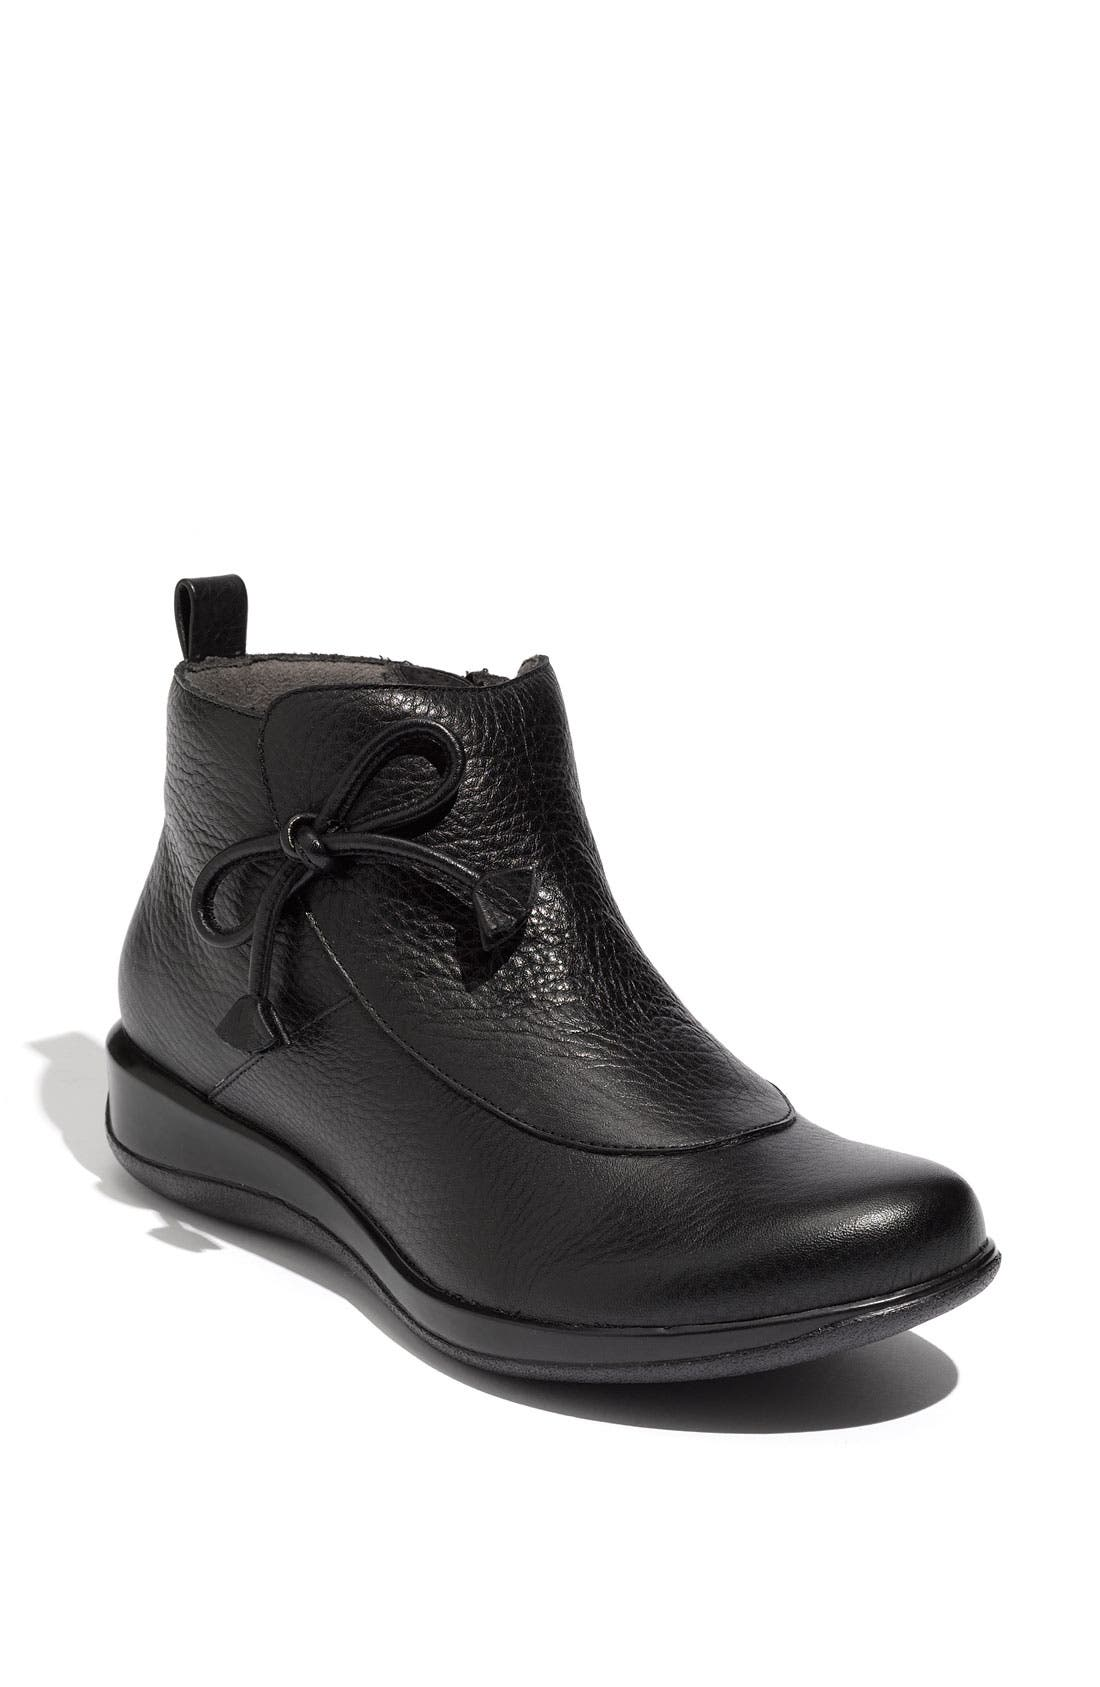 Alternate Image 1 Selected - SoftWalk® 'Trieste' Boot